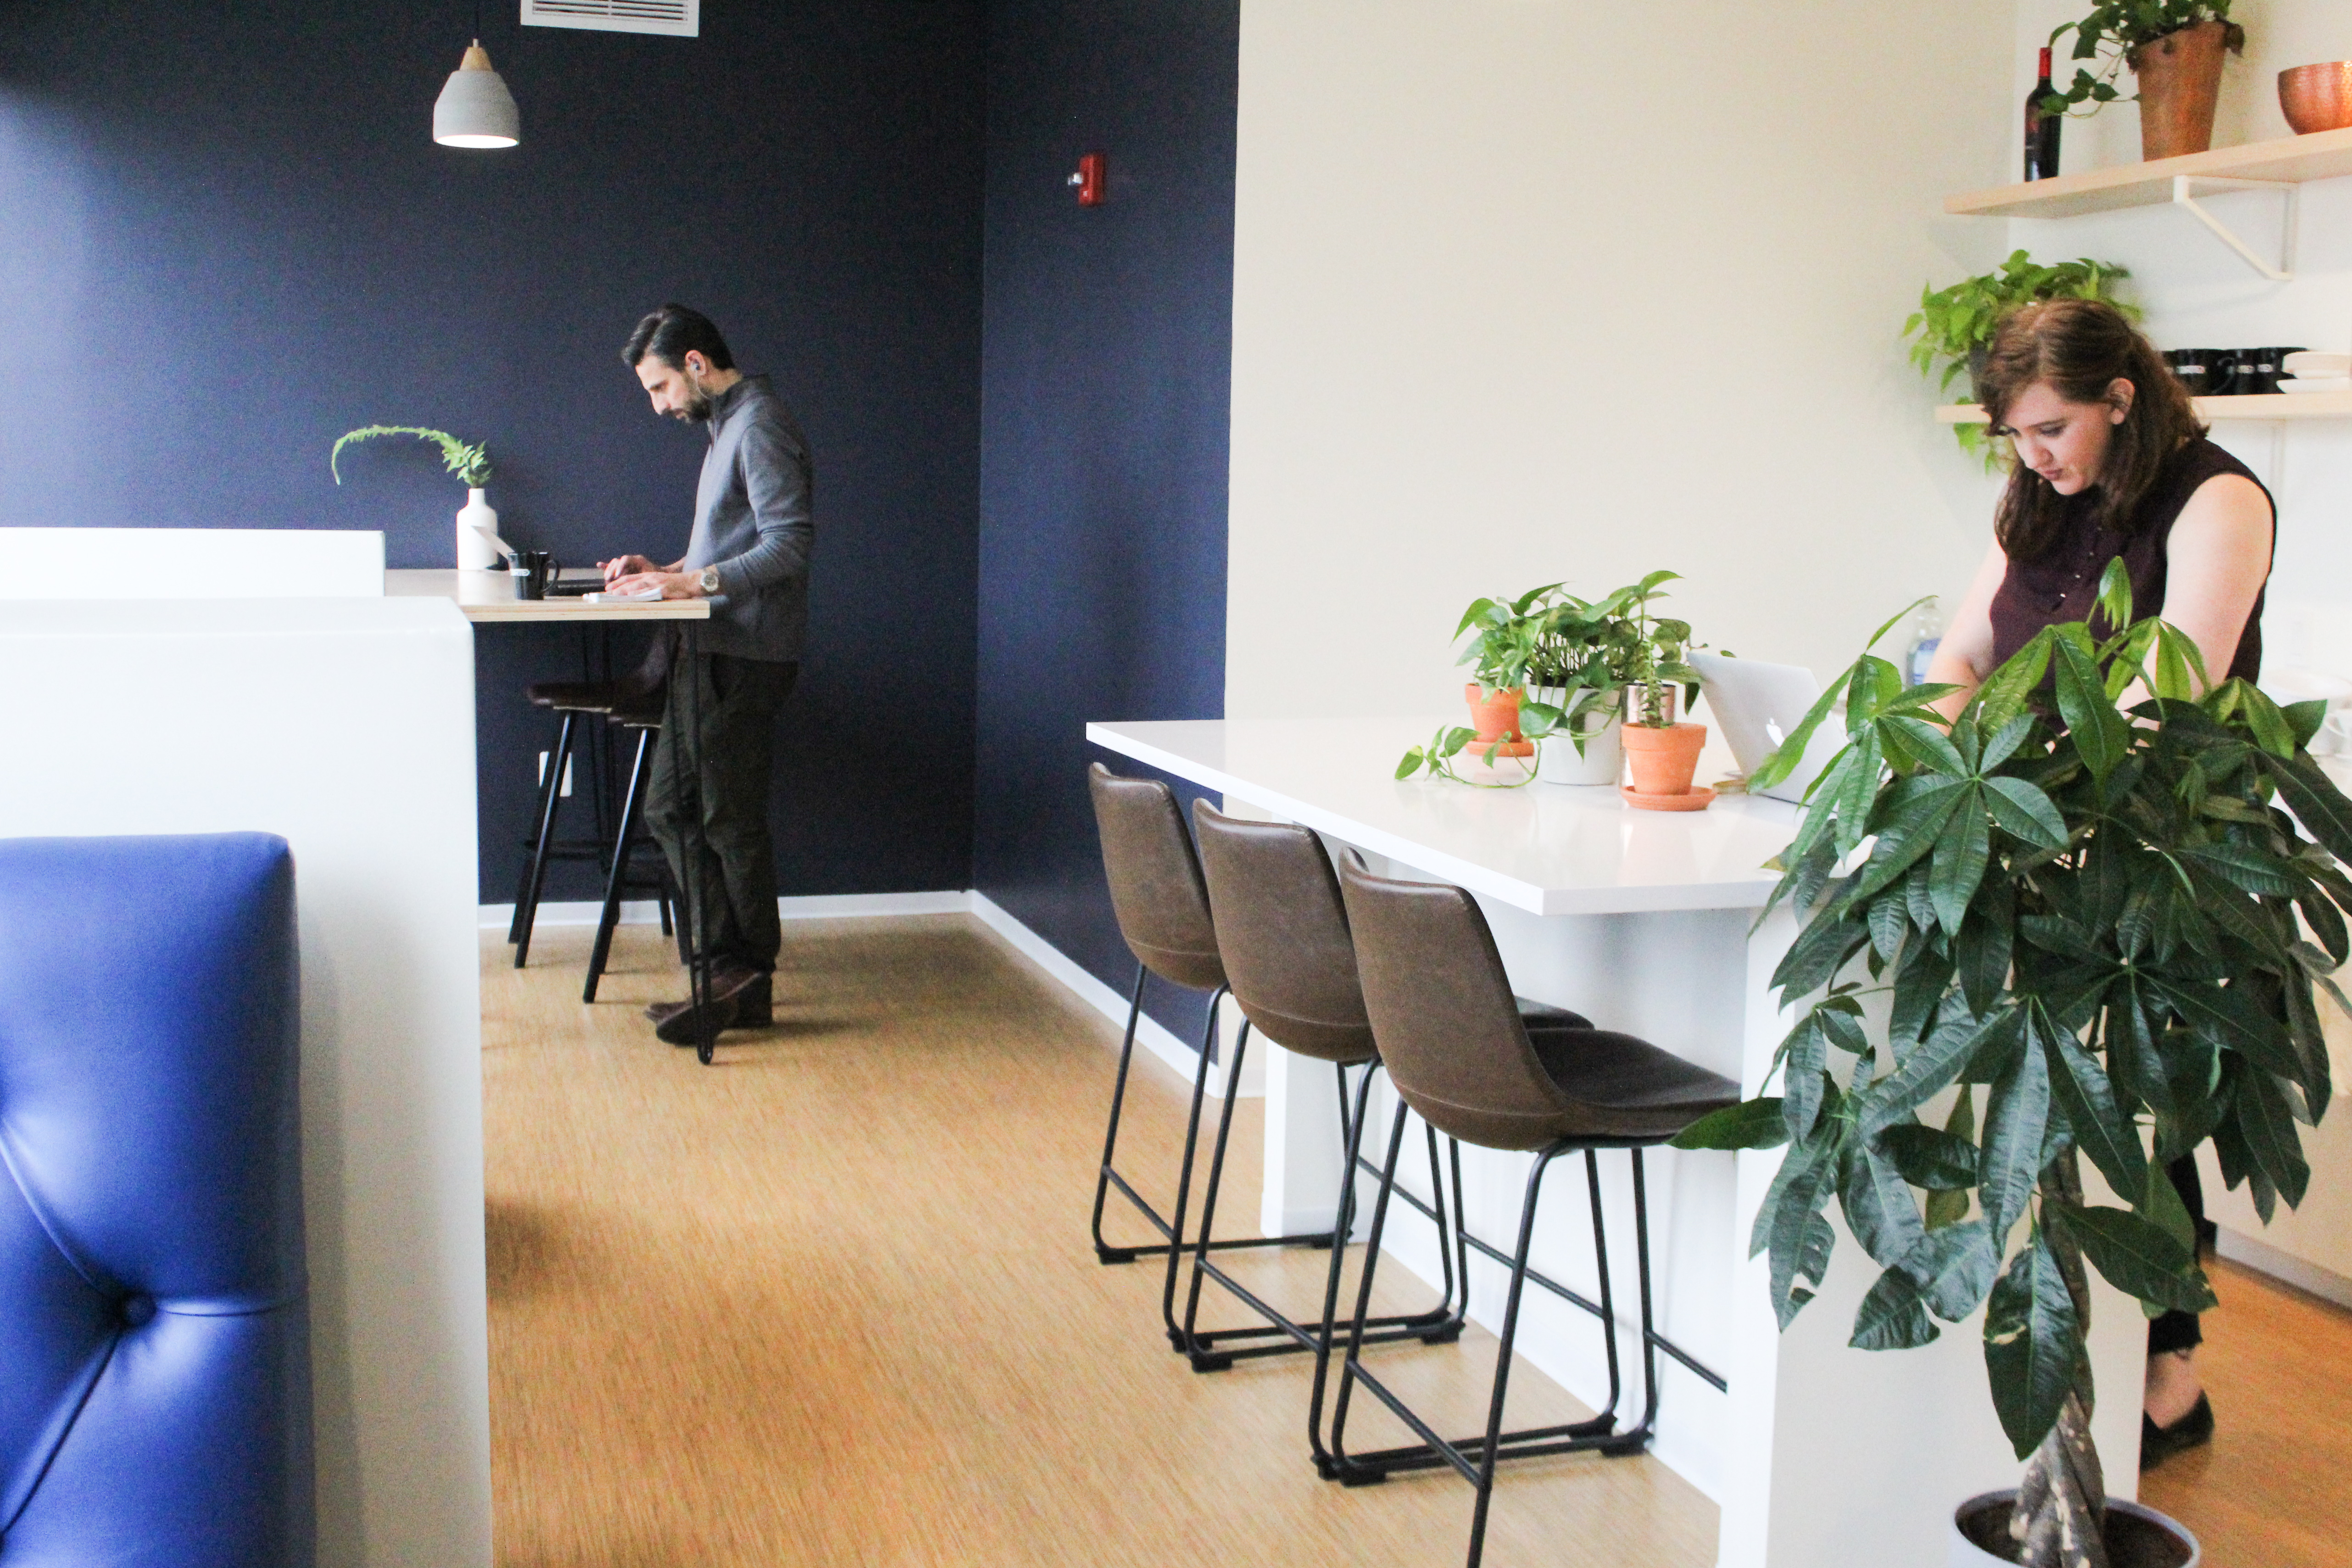 10755383696 img 7215 1 DC Based Coworking Company Cove Launches New Office Concept for Businesses